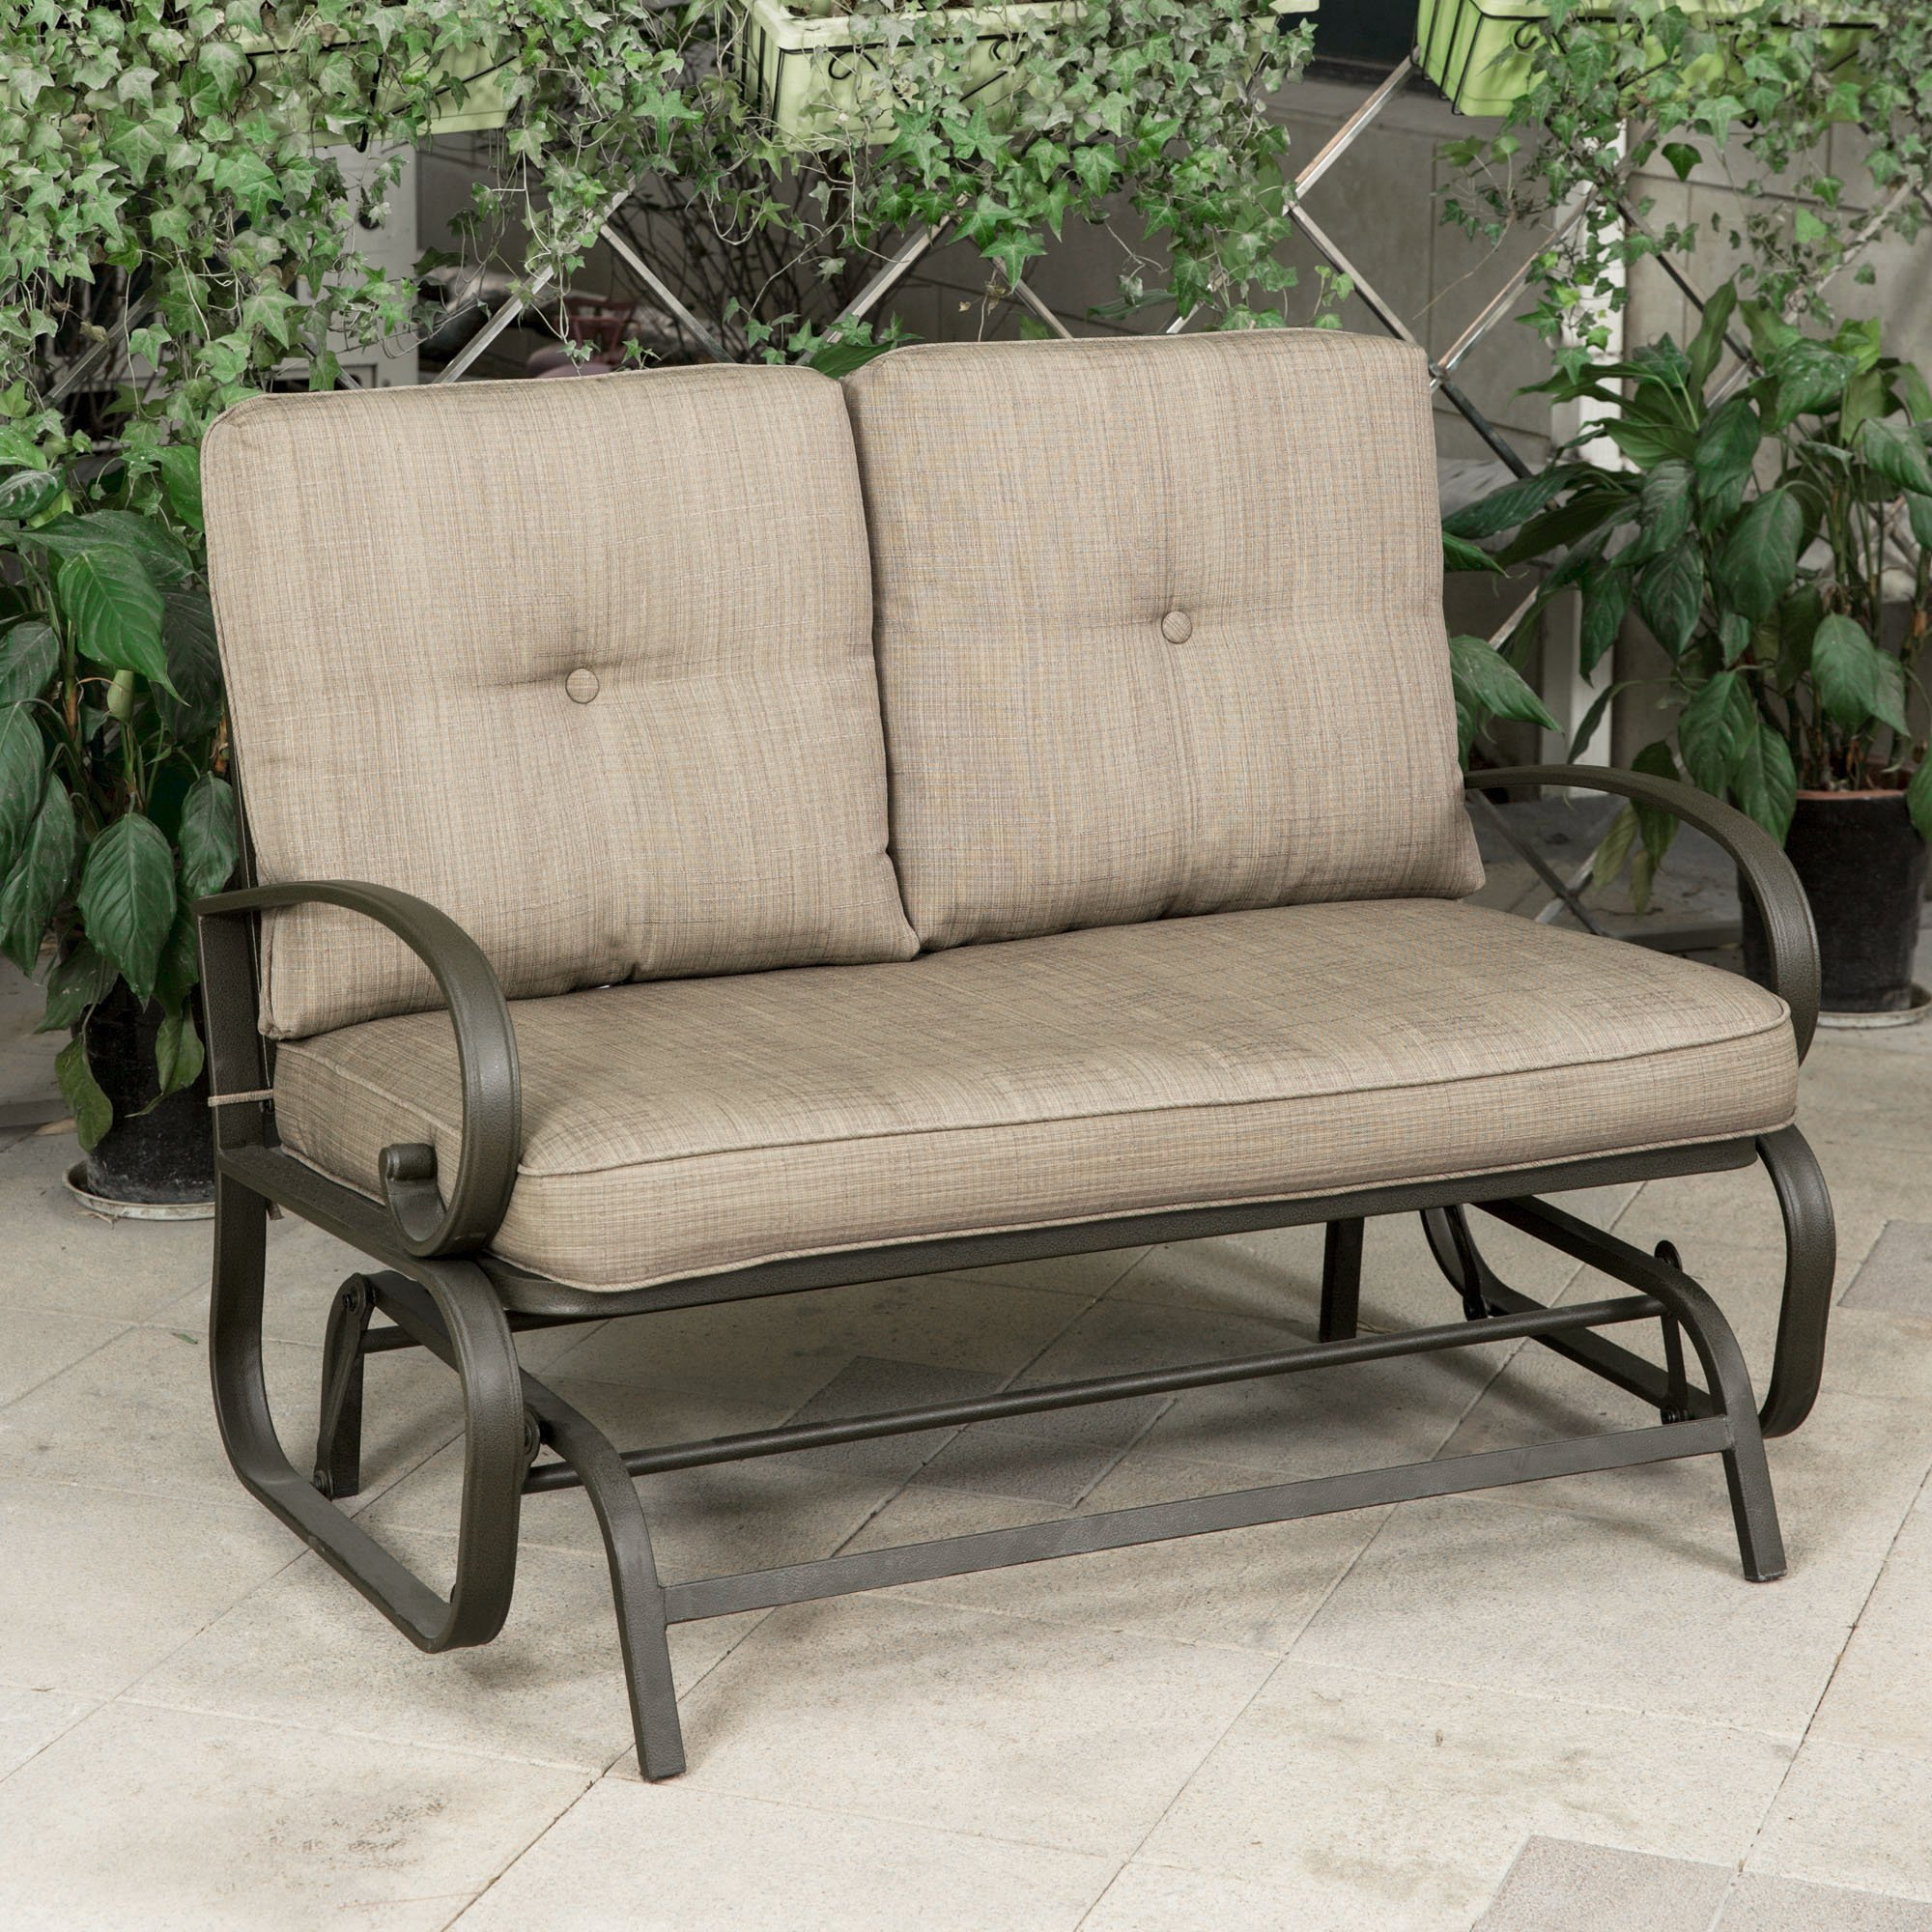 Buy Outdoor Patio Leisure Swing Rocker Glider Bench Loveseat Intended For Loveseat Glider Benches (View 23 of 25)